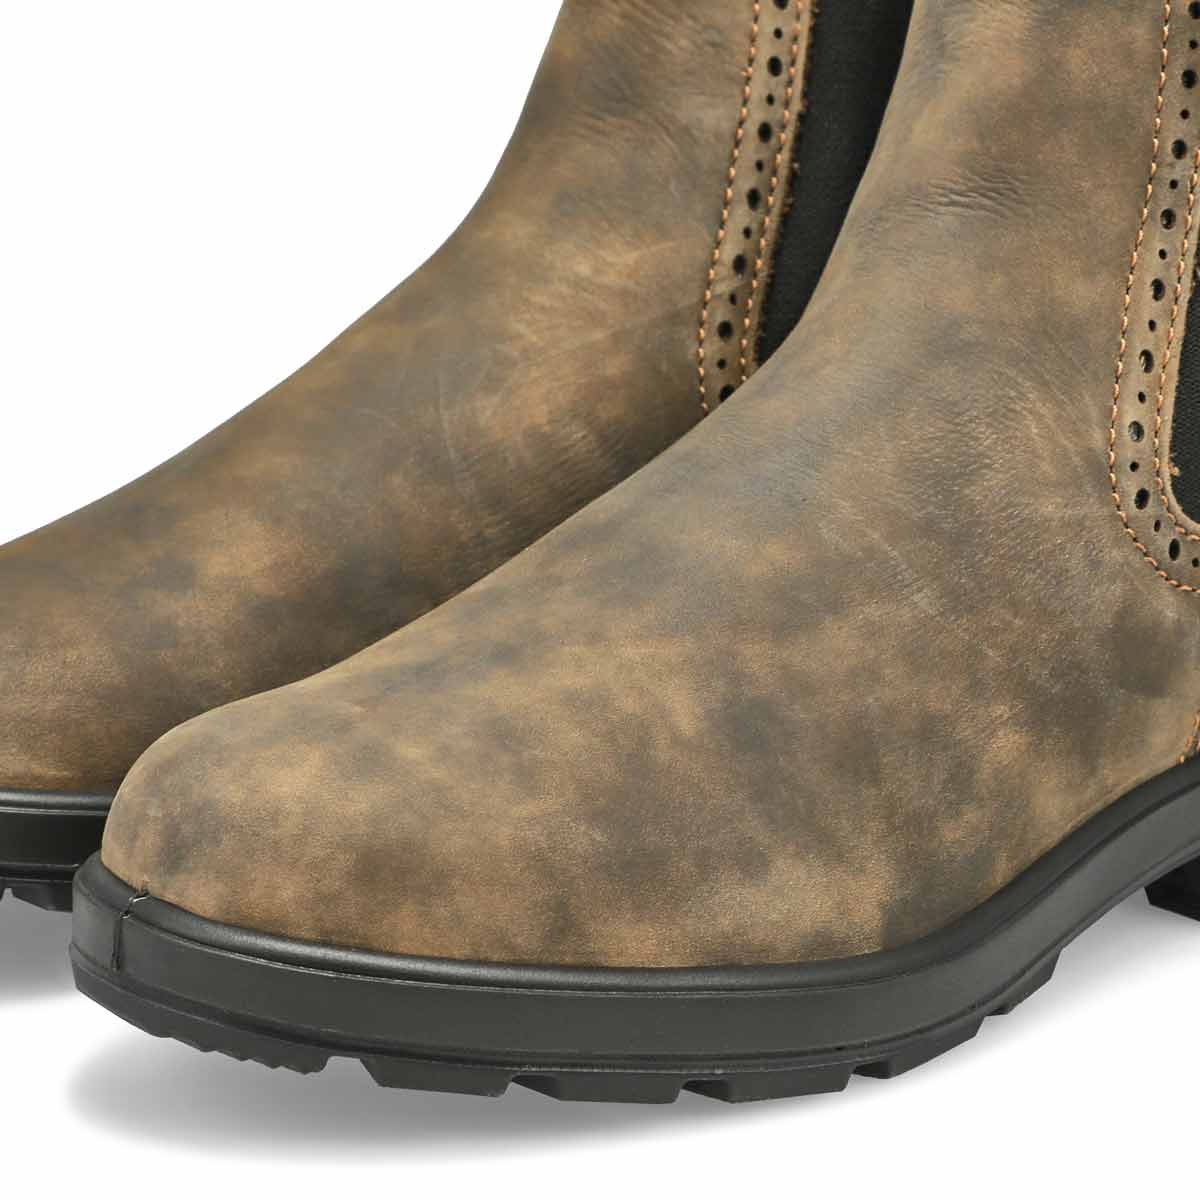 Lds Girlfriend rustic brown pull on boot